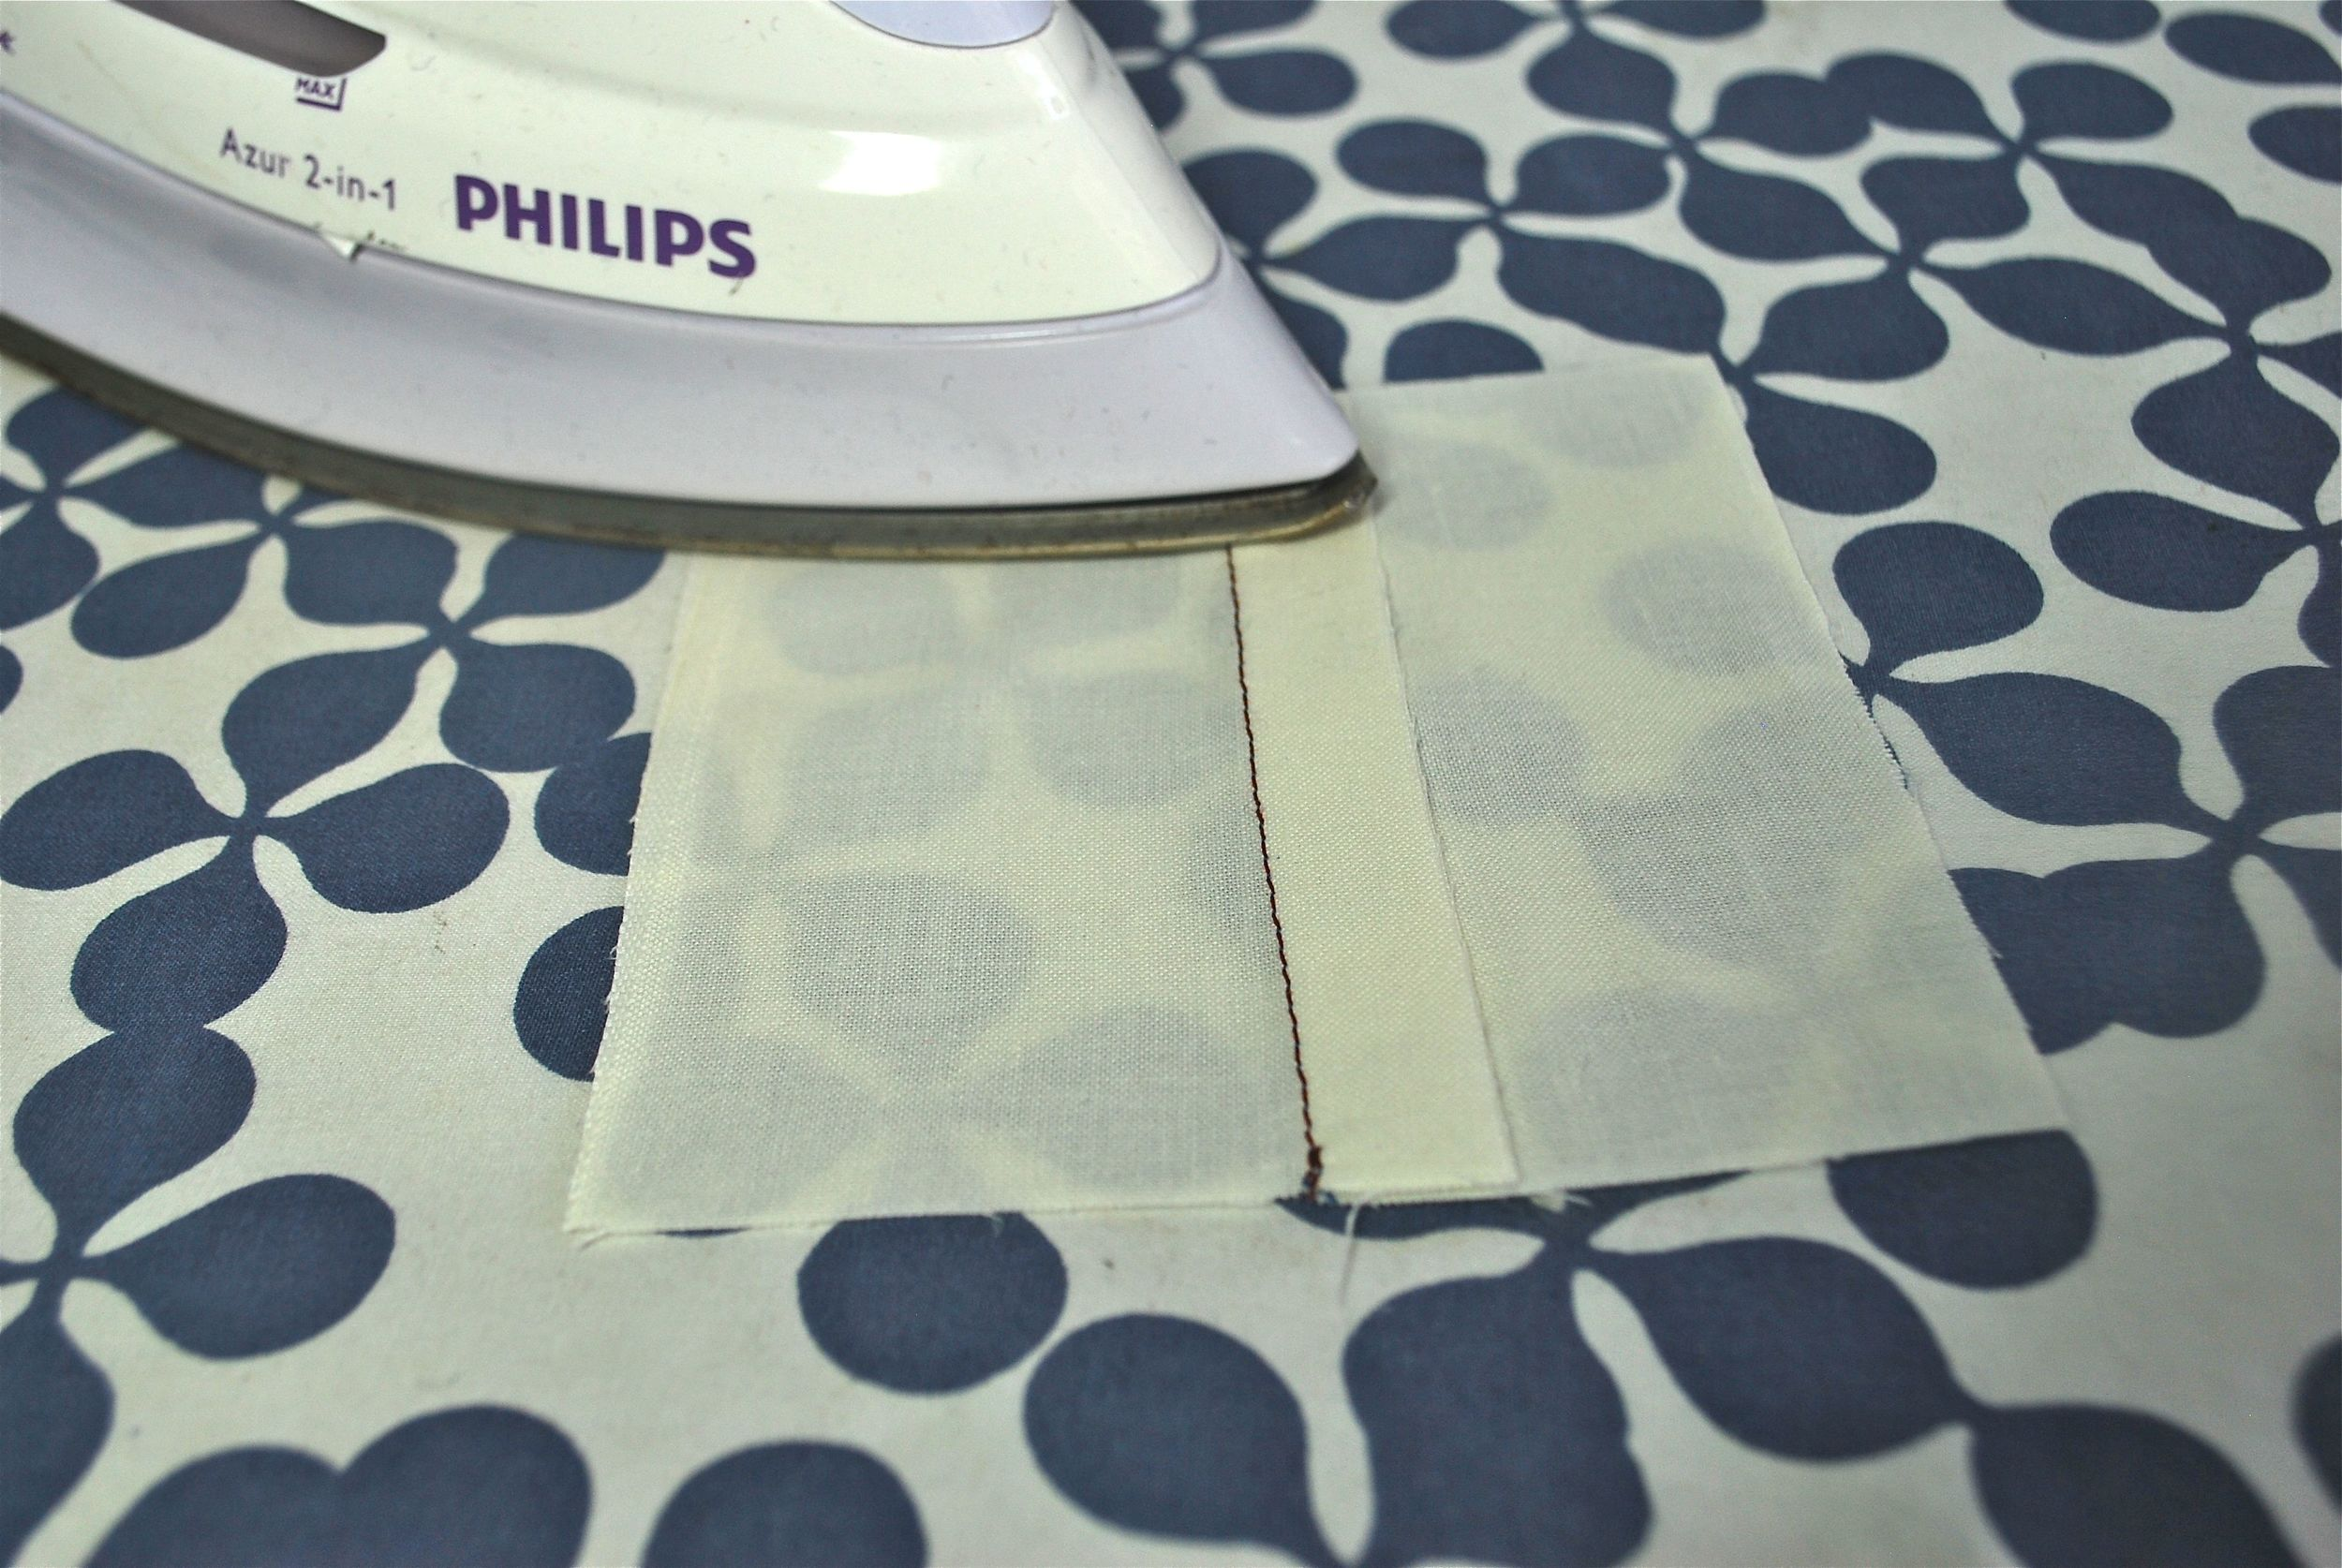 First Press - Pressing your seams to the a side.